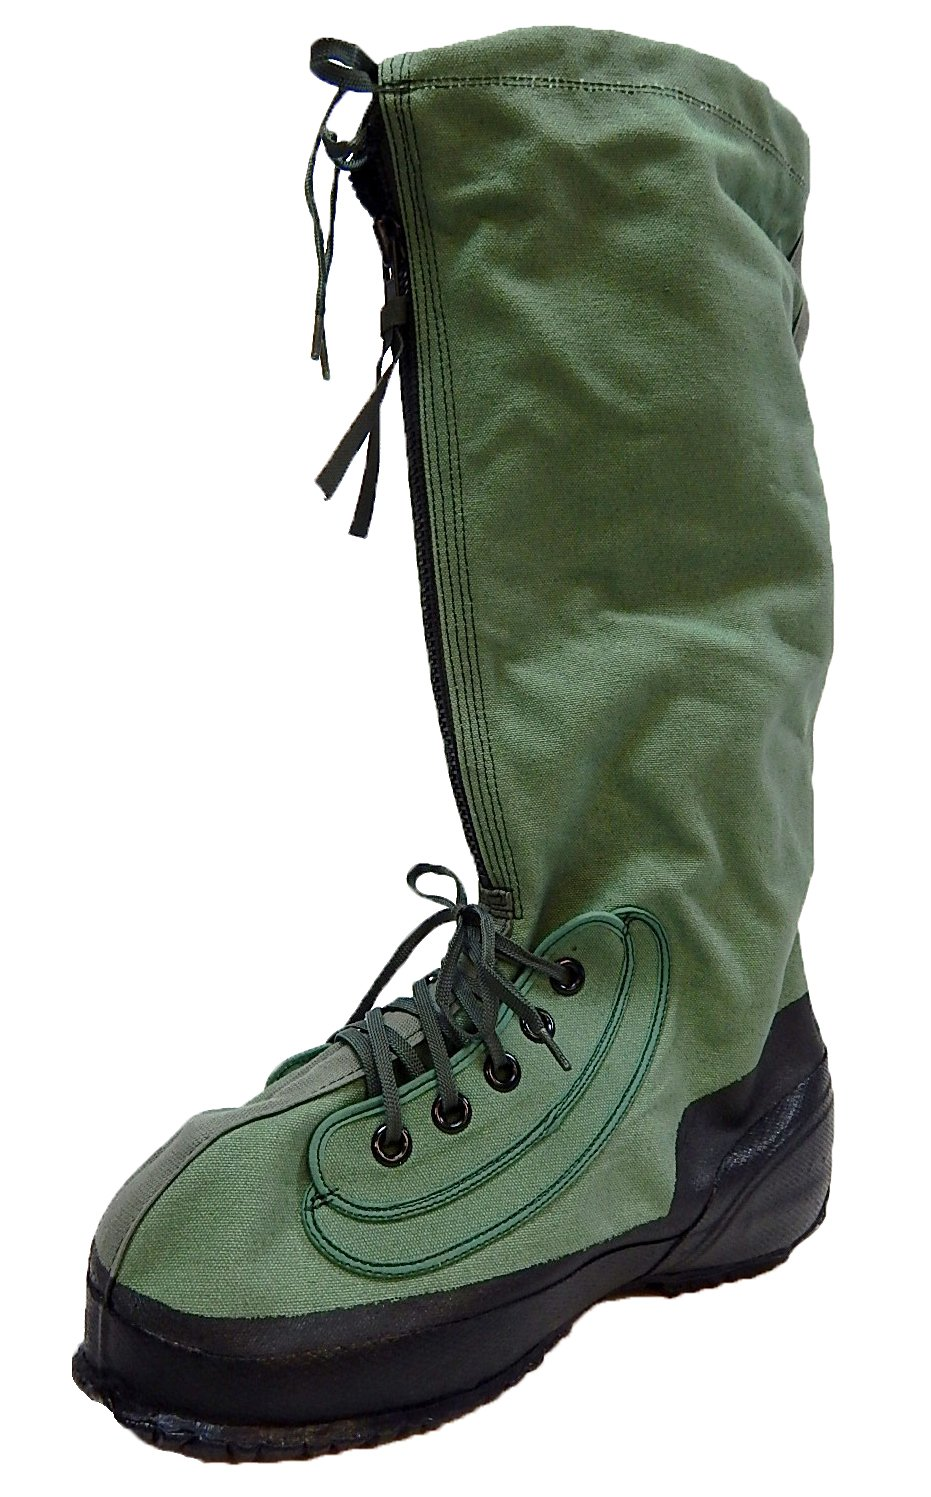 Wellco N-1B Air Force Snow/Extreme Cold Weather Mukluks Boots, Made in USA (Medium)